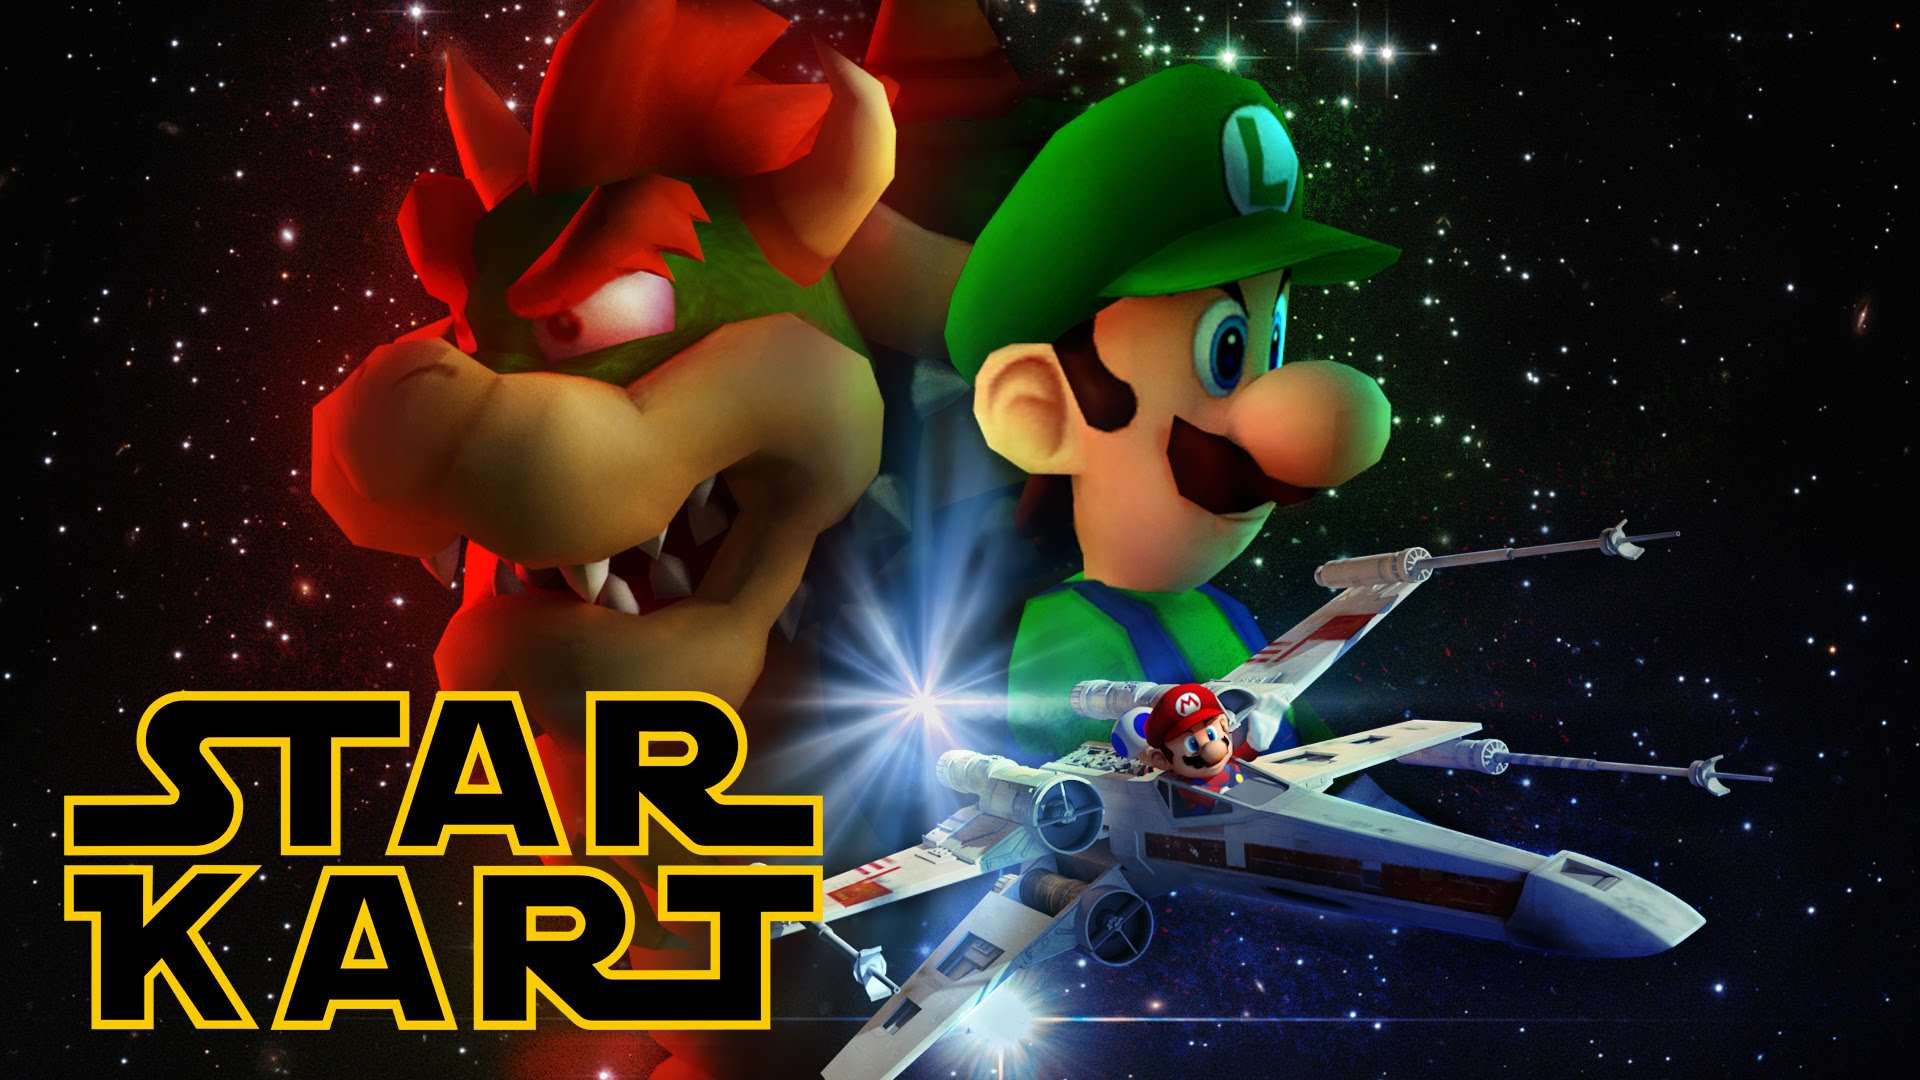 Star Wars And Mario Kart Collide In This Amazing Video maxresdefault 20